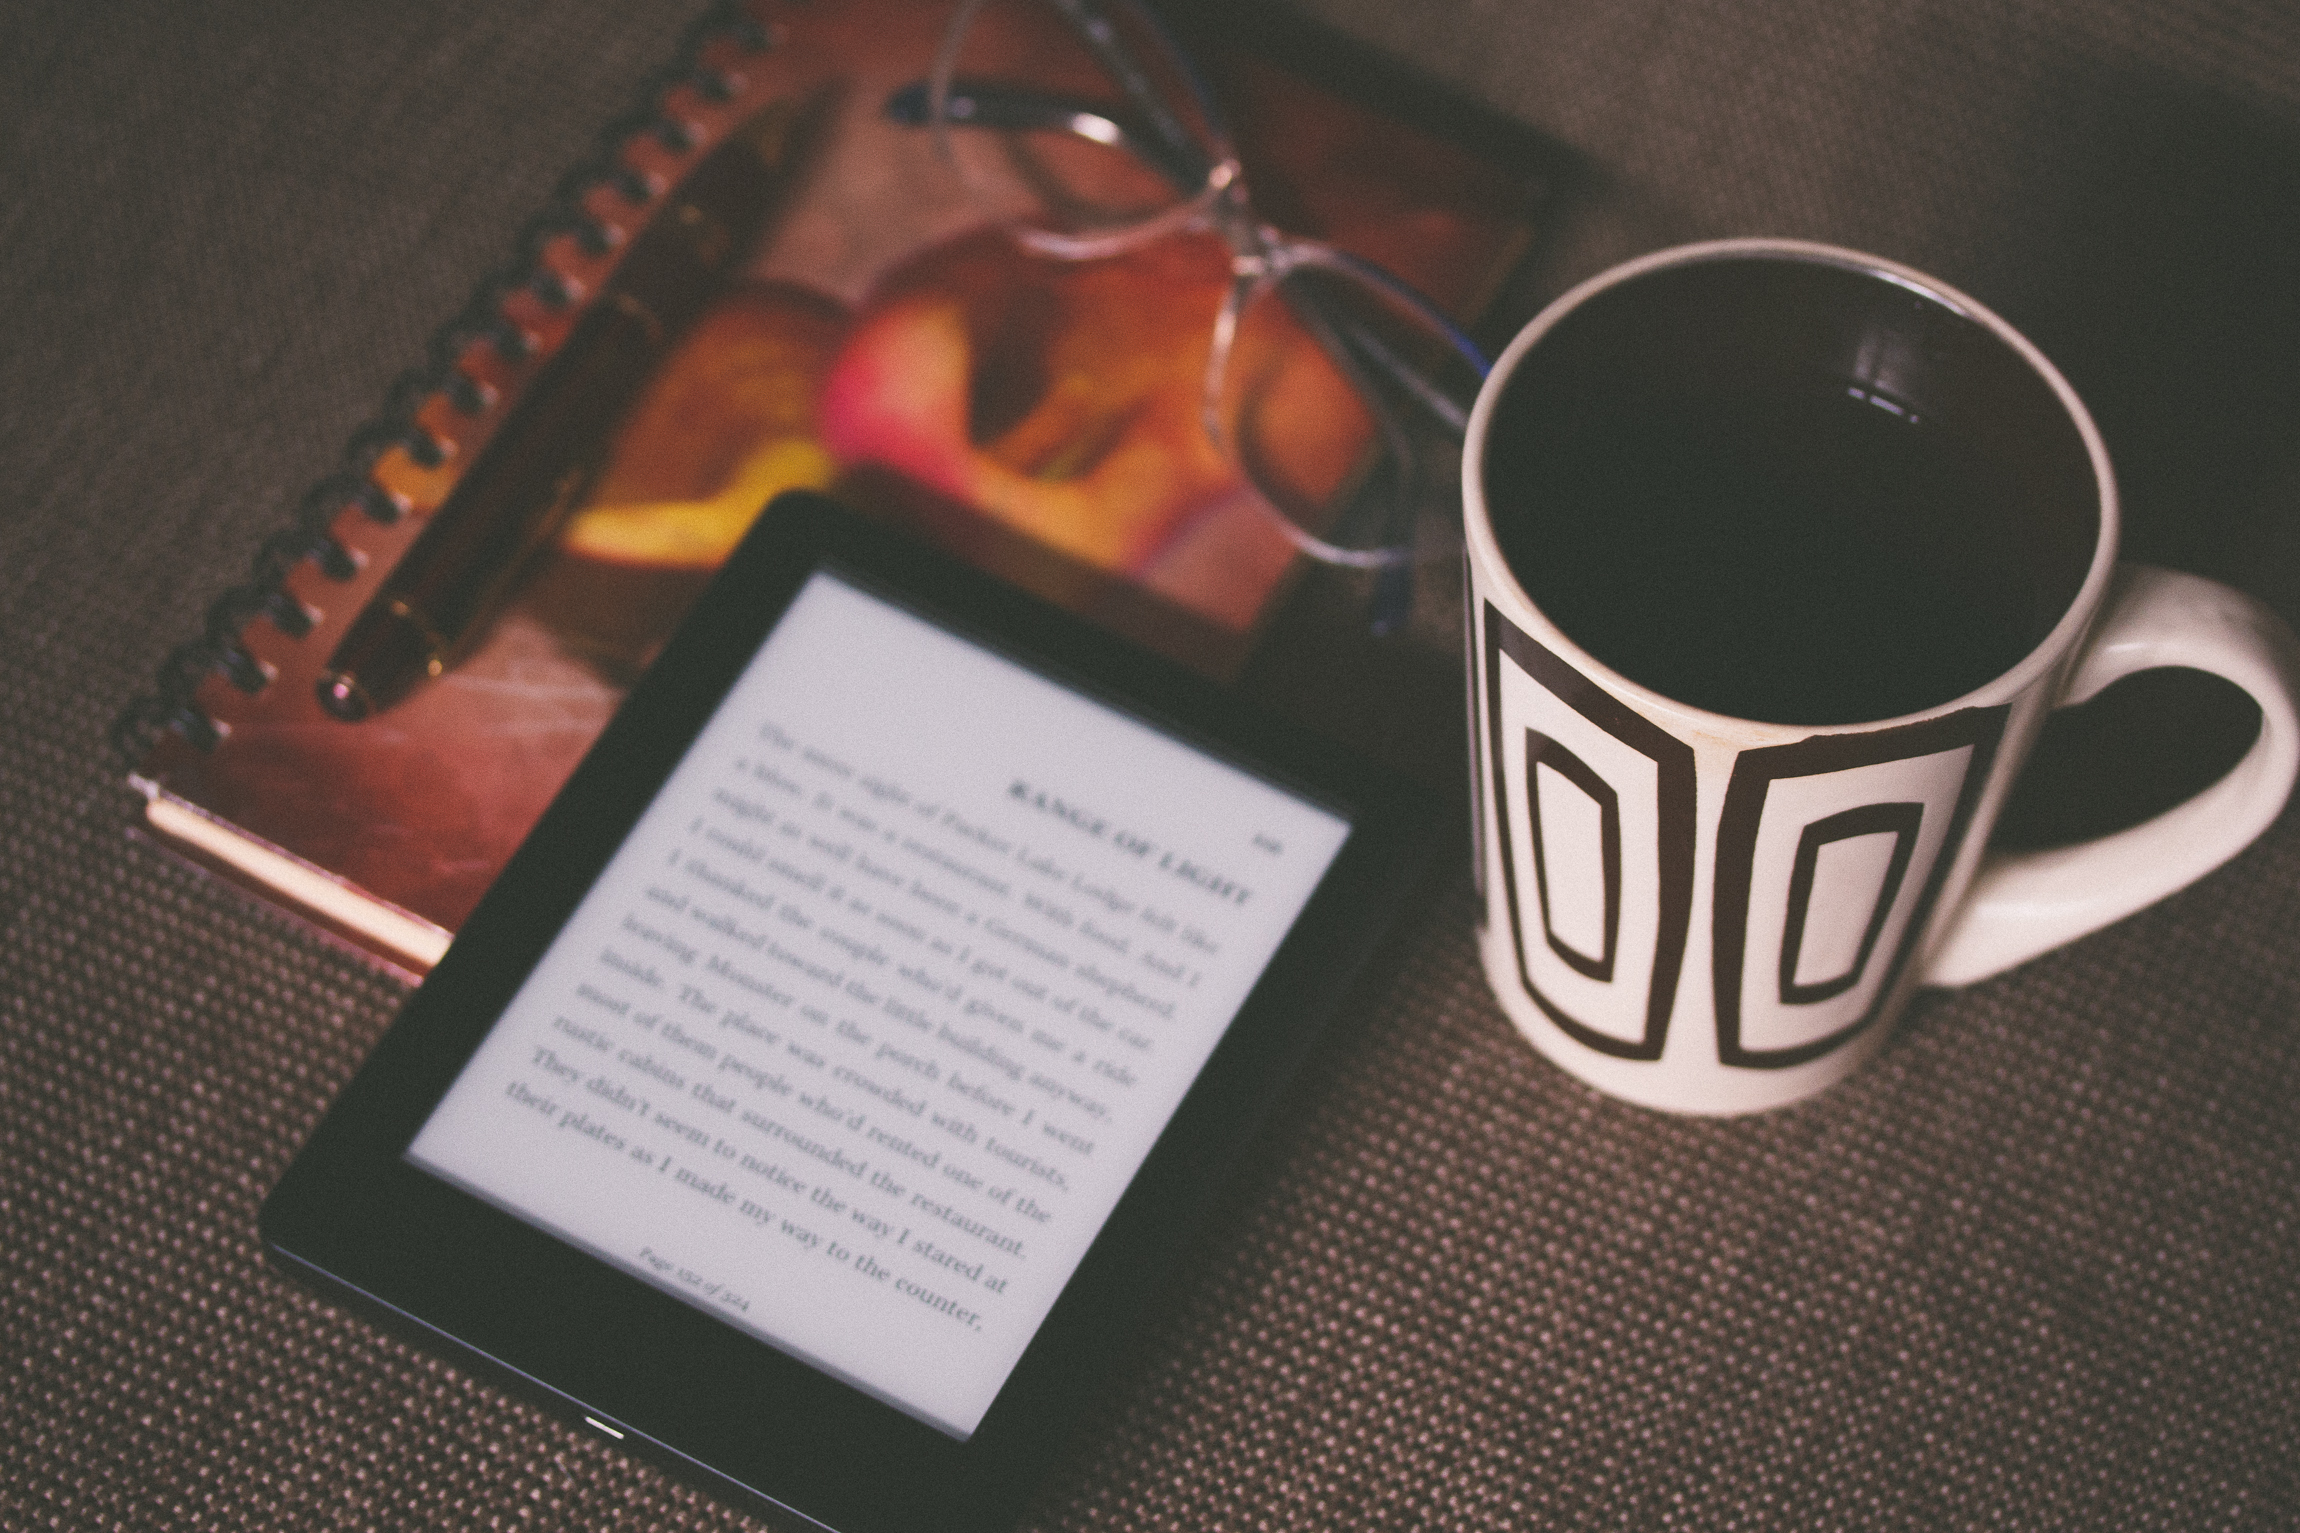 My favorite book-related purchase this year? My Kindle Paperwhite :)  Photo by Aliis Sinisalu via Unsplash.